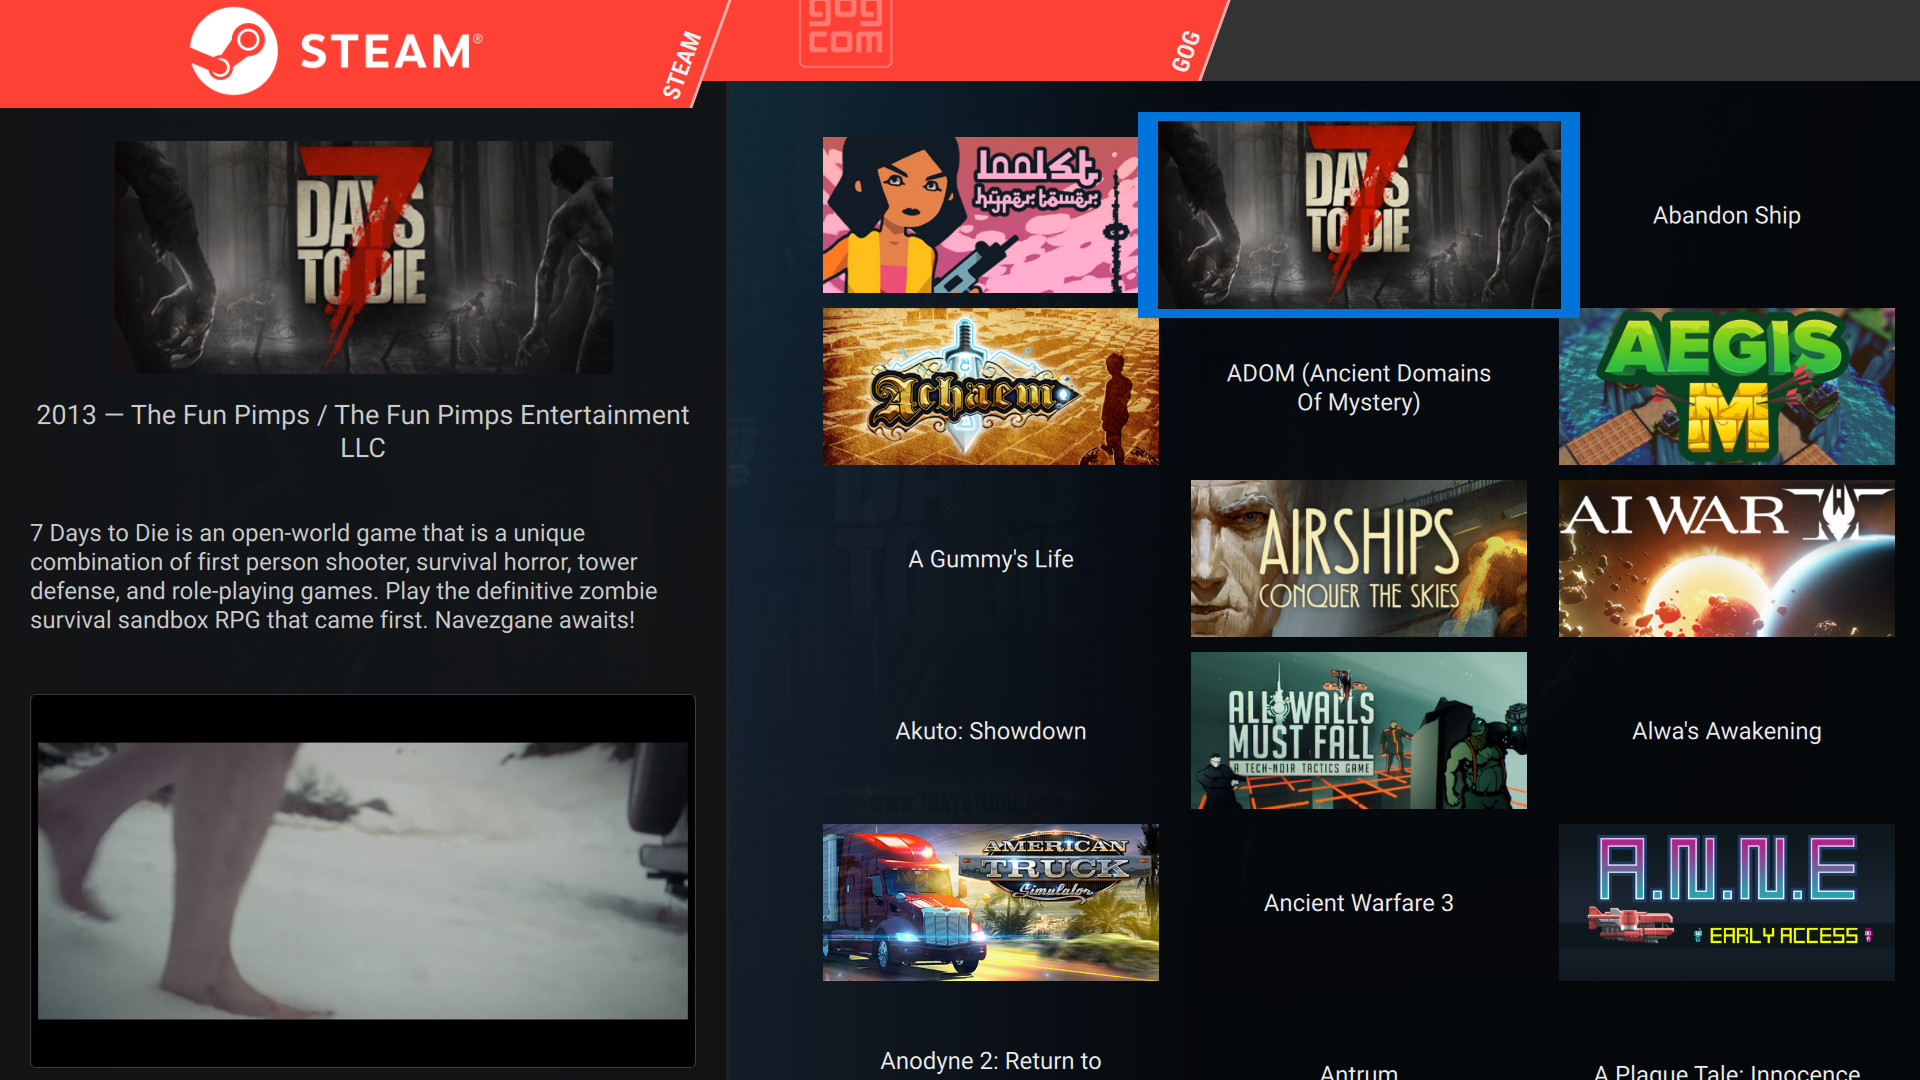 Pegasus Frontend, another open source game launcher has